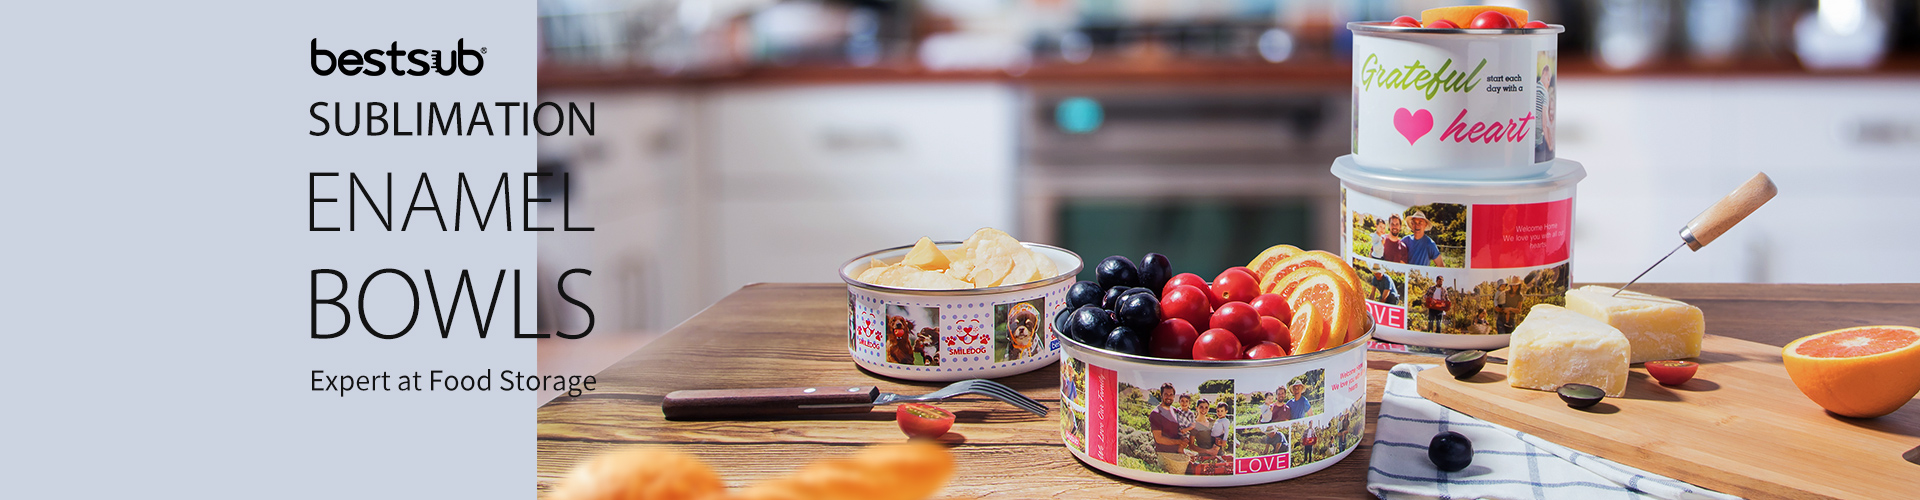 2019-4-9_Sublimation_Enamel_Bowls_Expert_at_Food_Storage_new_web